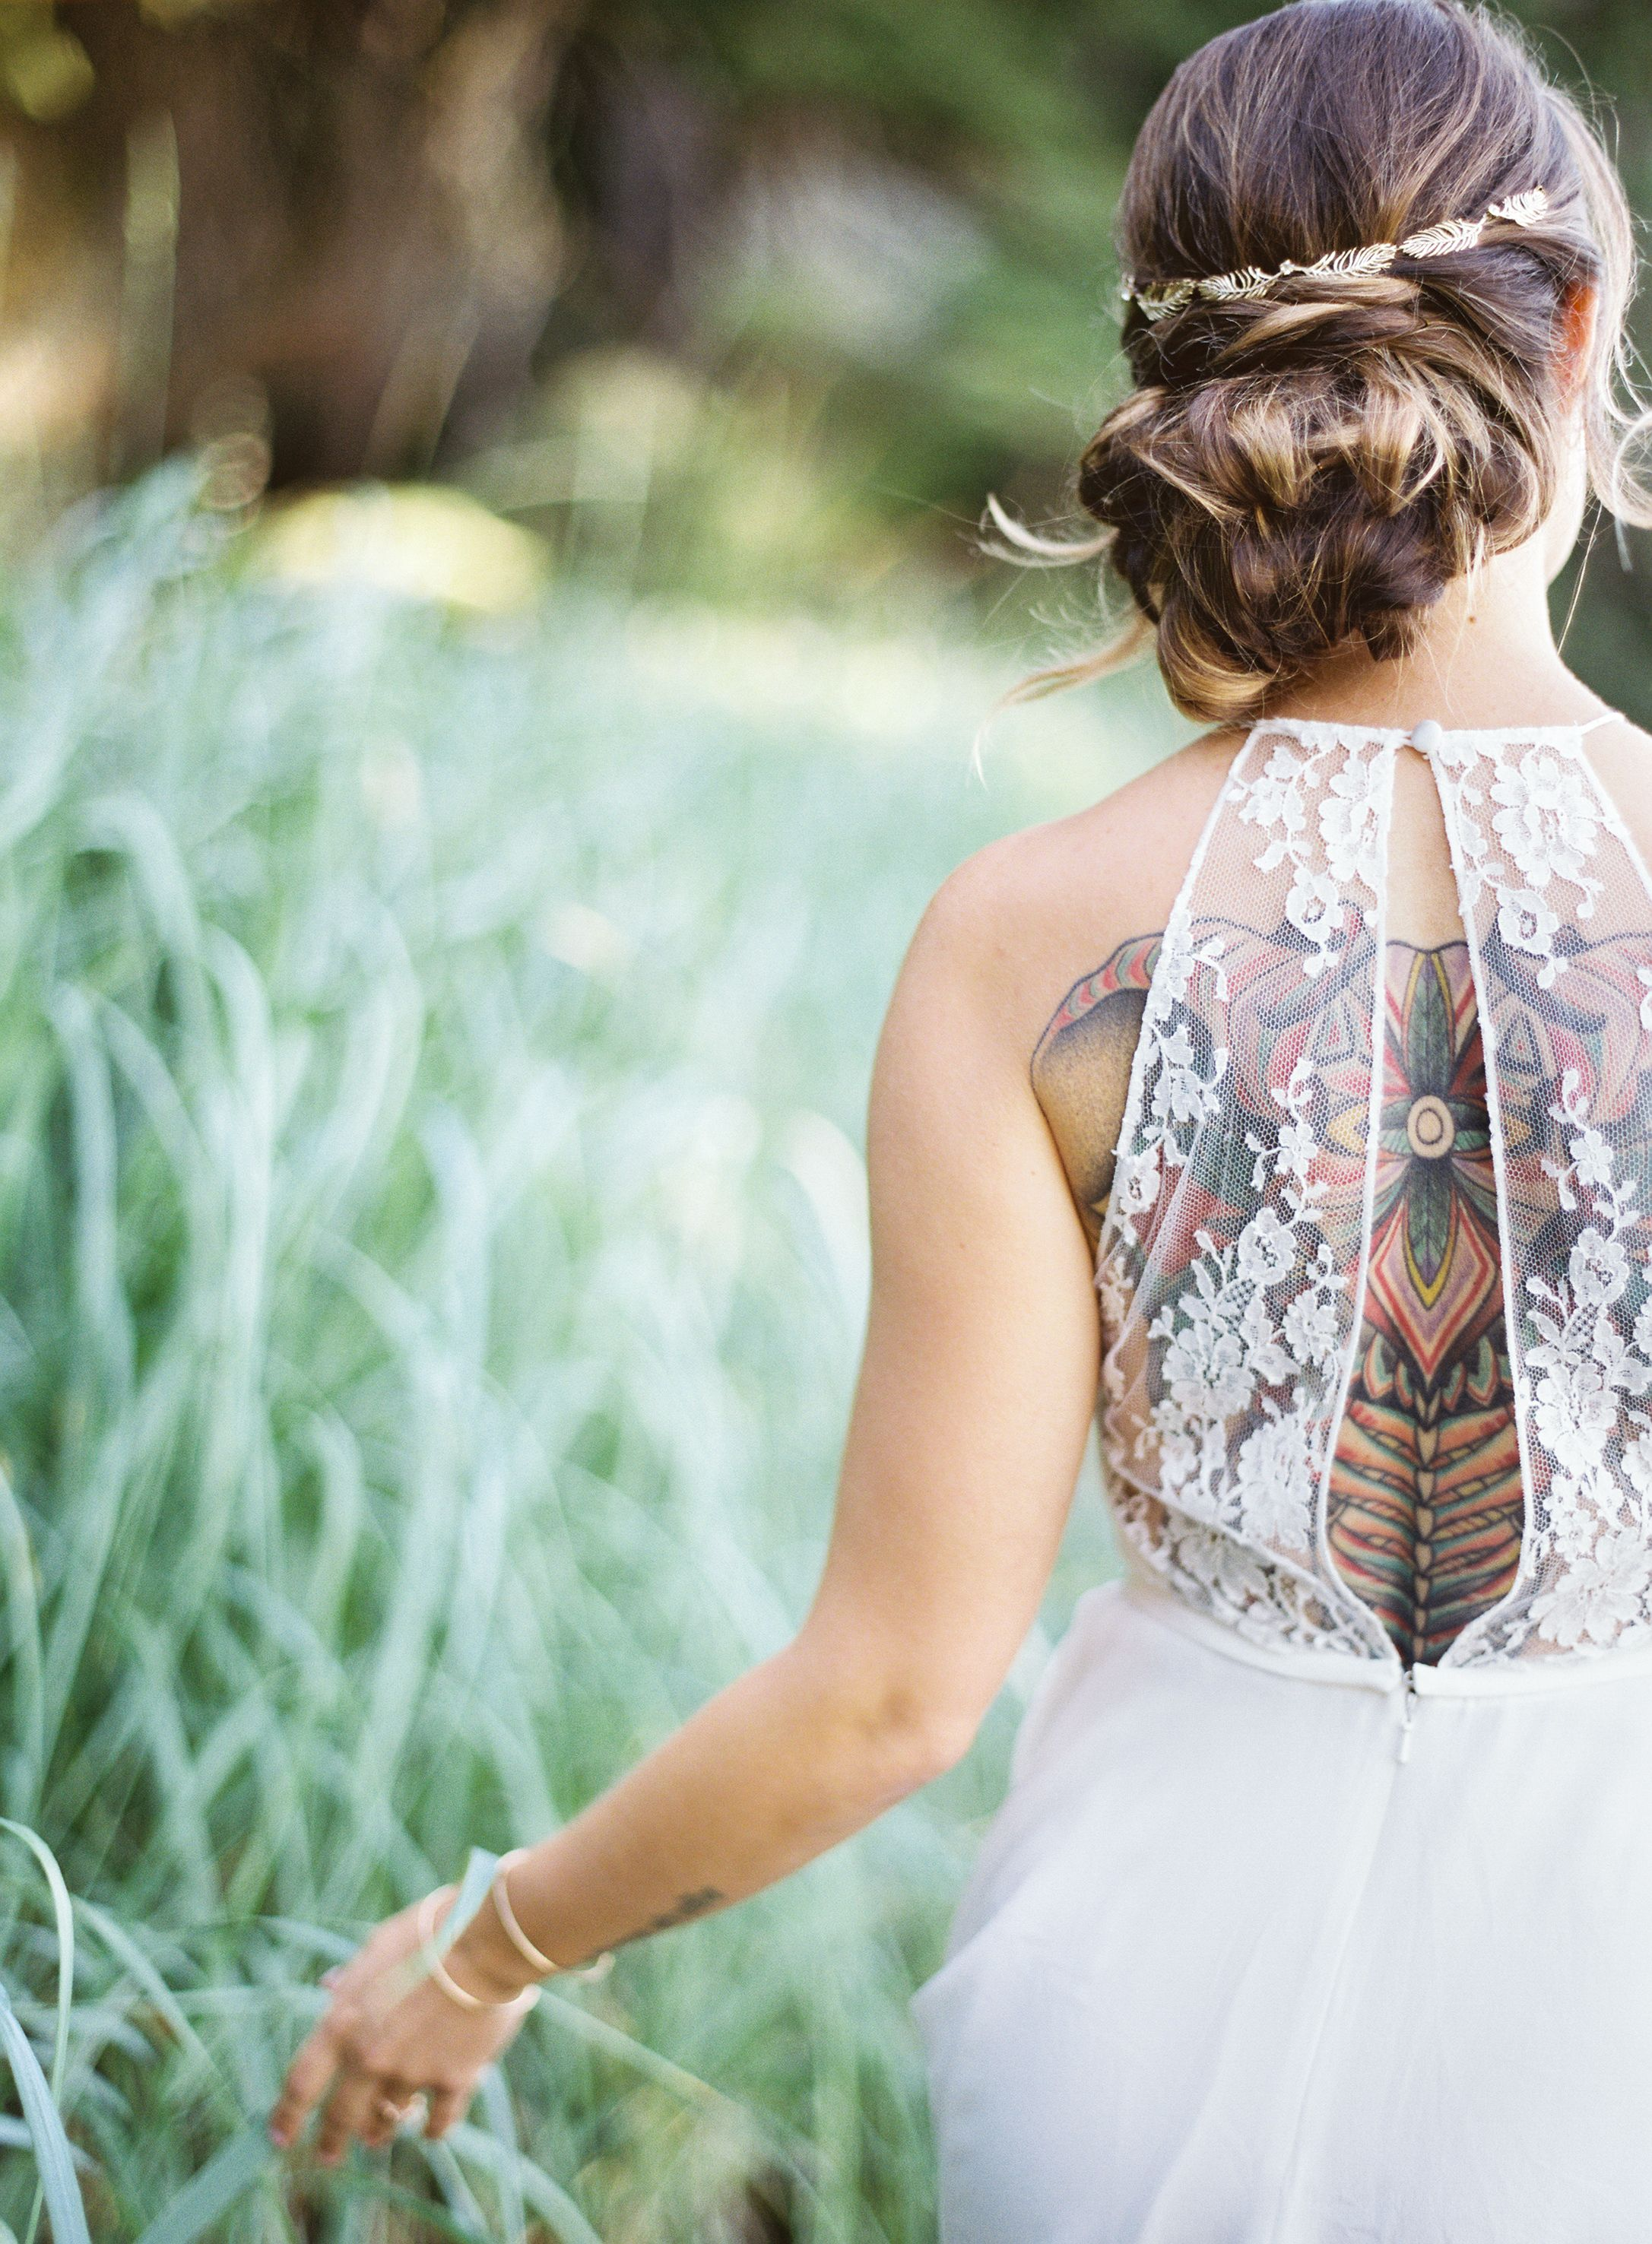 Gorgeous hair style and back dress details | Photography: Christine Clark